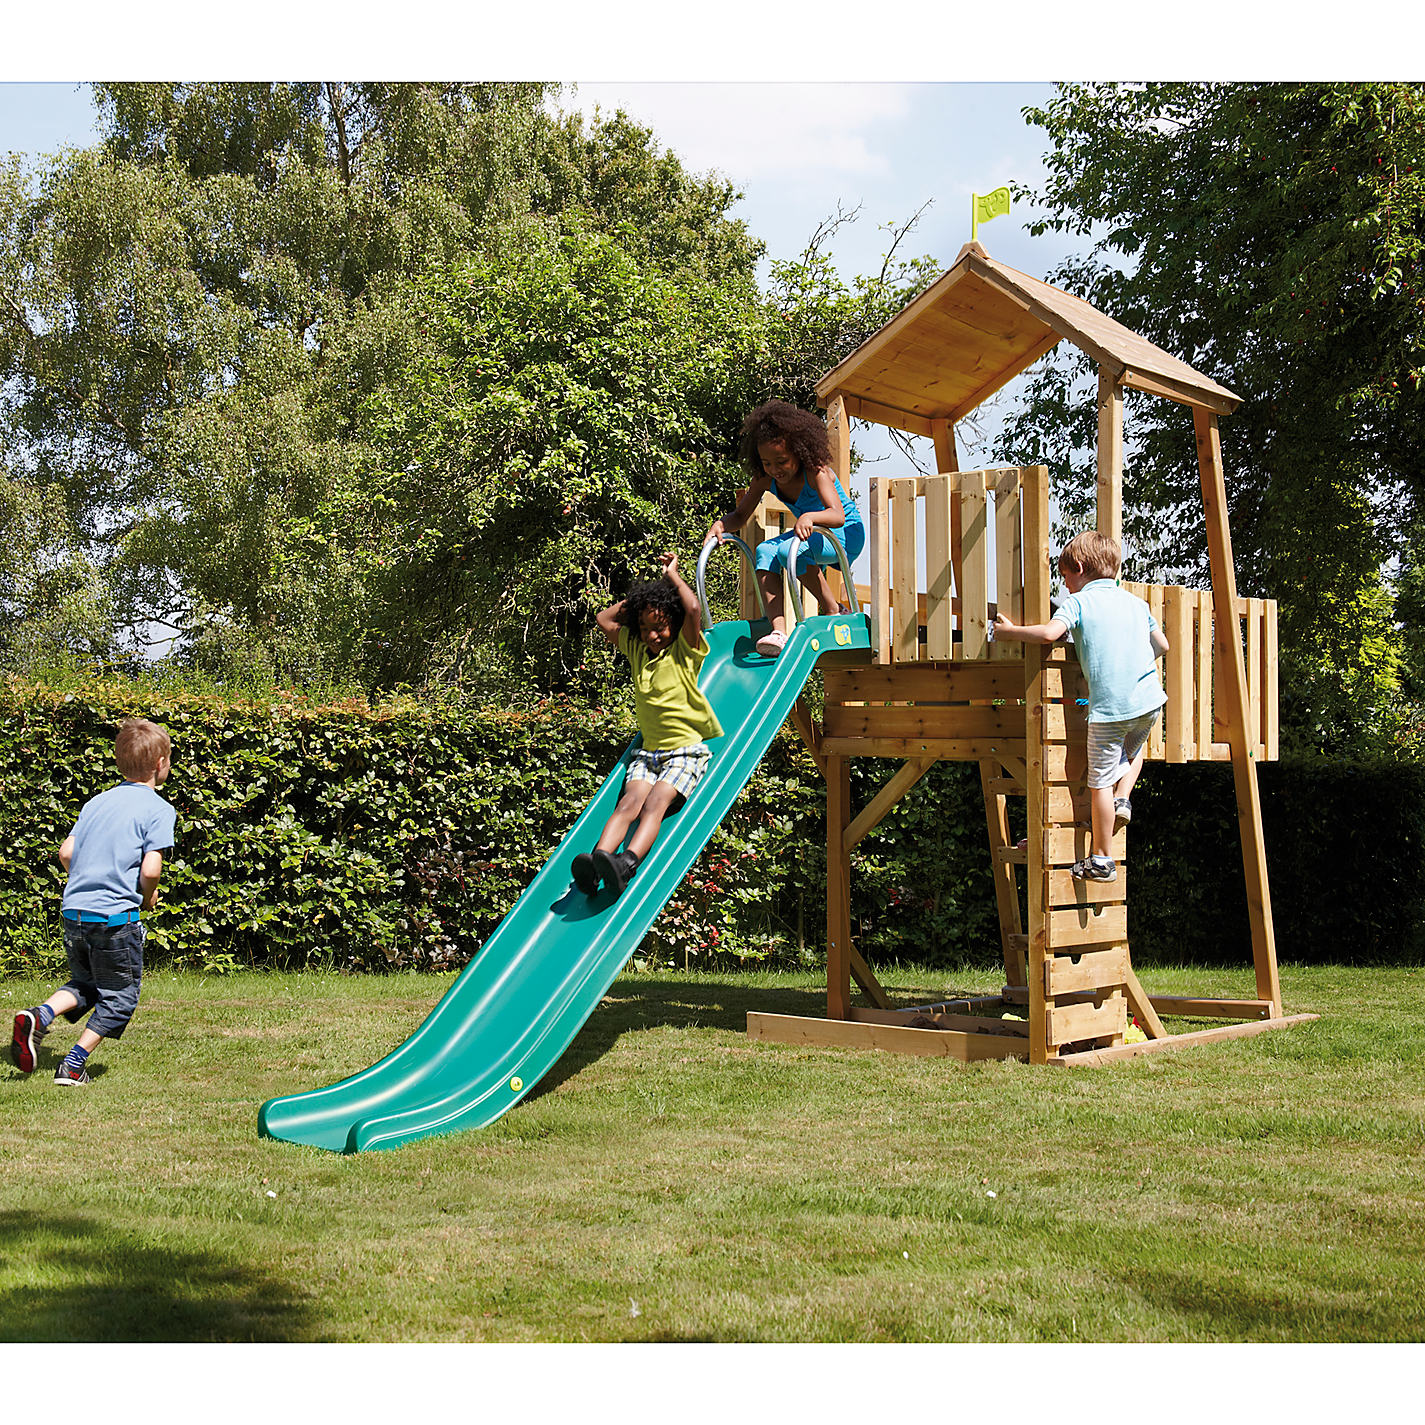 Buy TP Toys KW2S5 Kingswood2 Tower & Rapide Slide Set